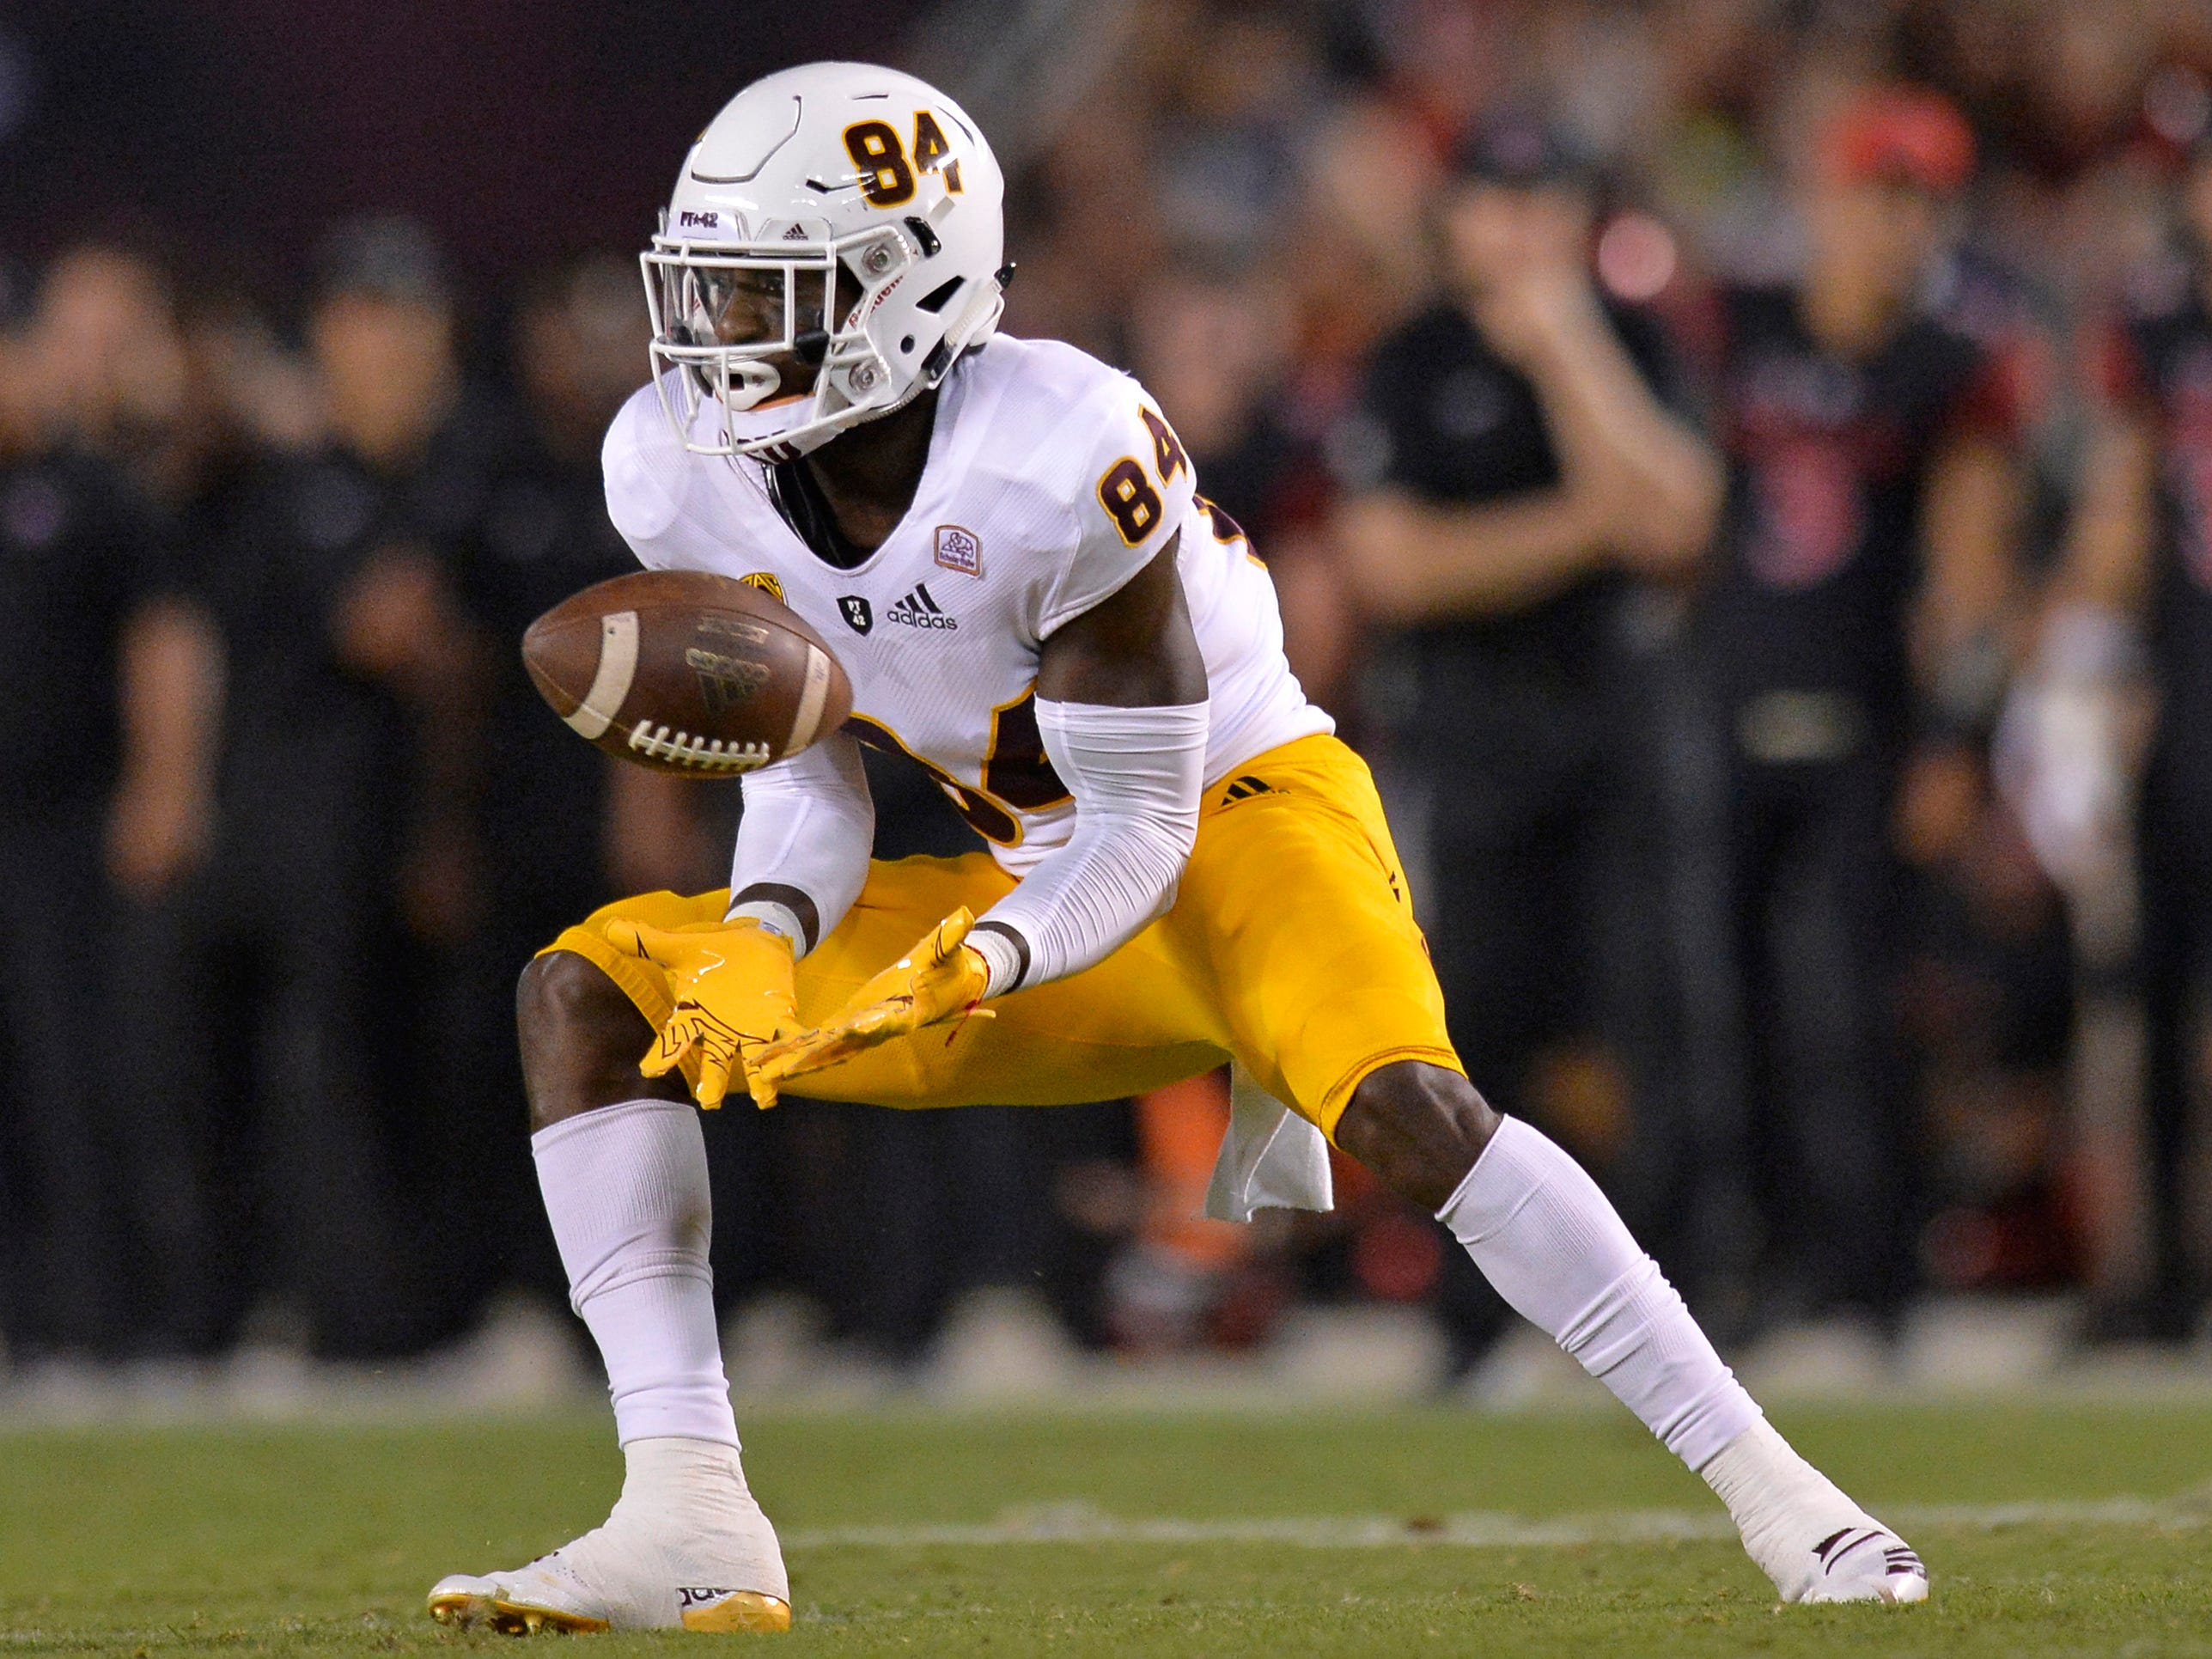 Sep 15, 2018; San Diego, CA, USA; Arizona State Sun Devils wide receiver Frank Darby (84) makes a second quarter catch against the San Diego State Aztecs at SDCCU Stadium. Mandatory Credit: Jake Roth-USA TODAY Sports